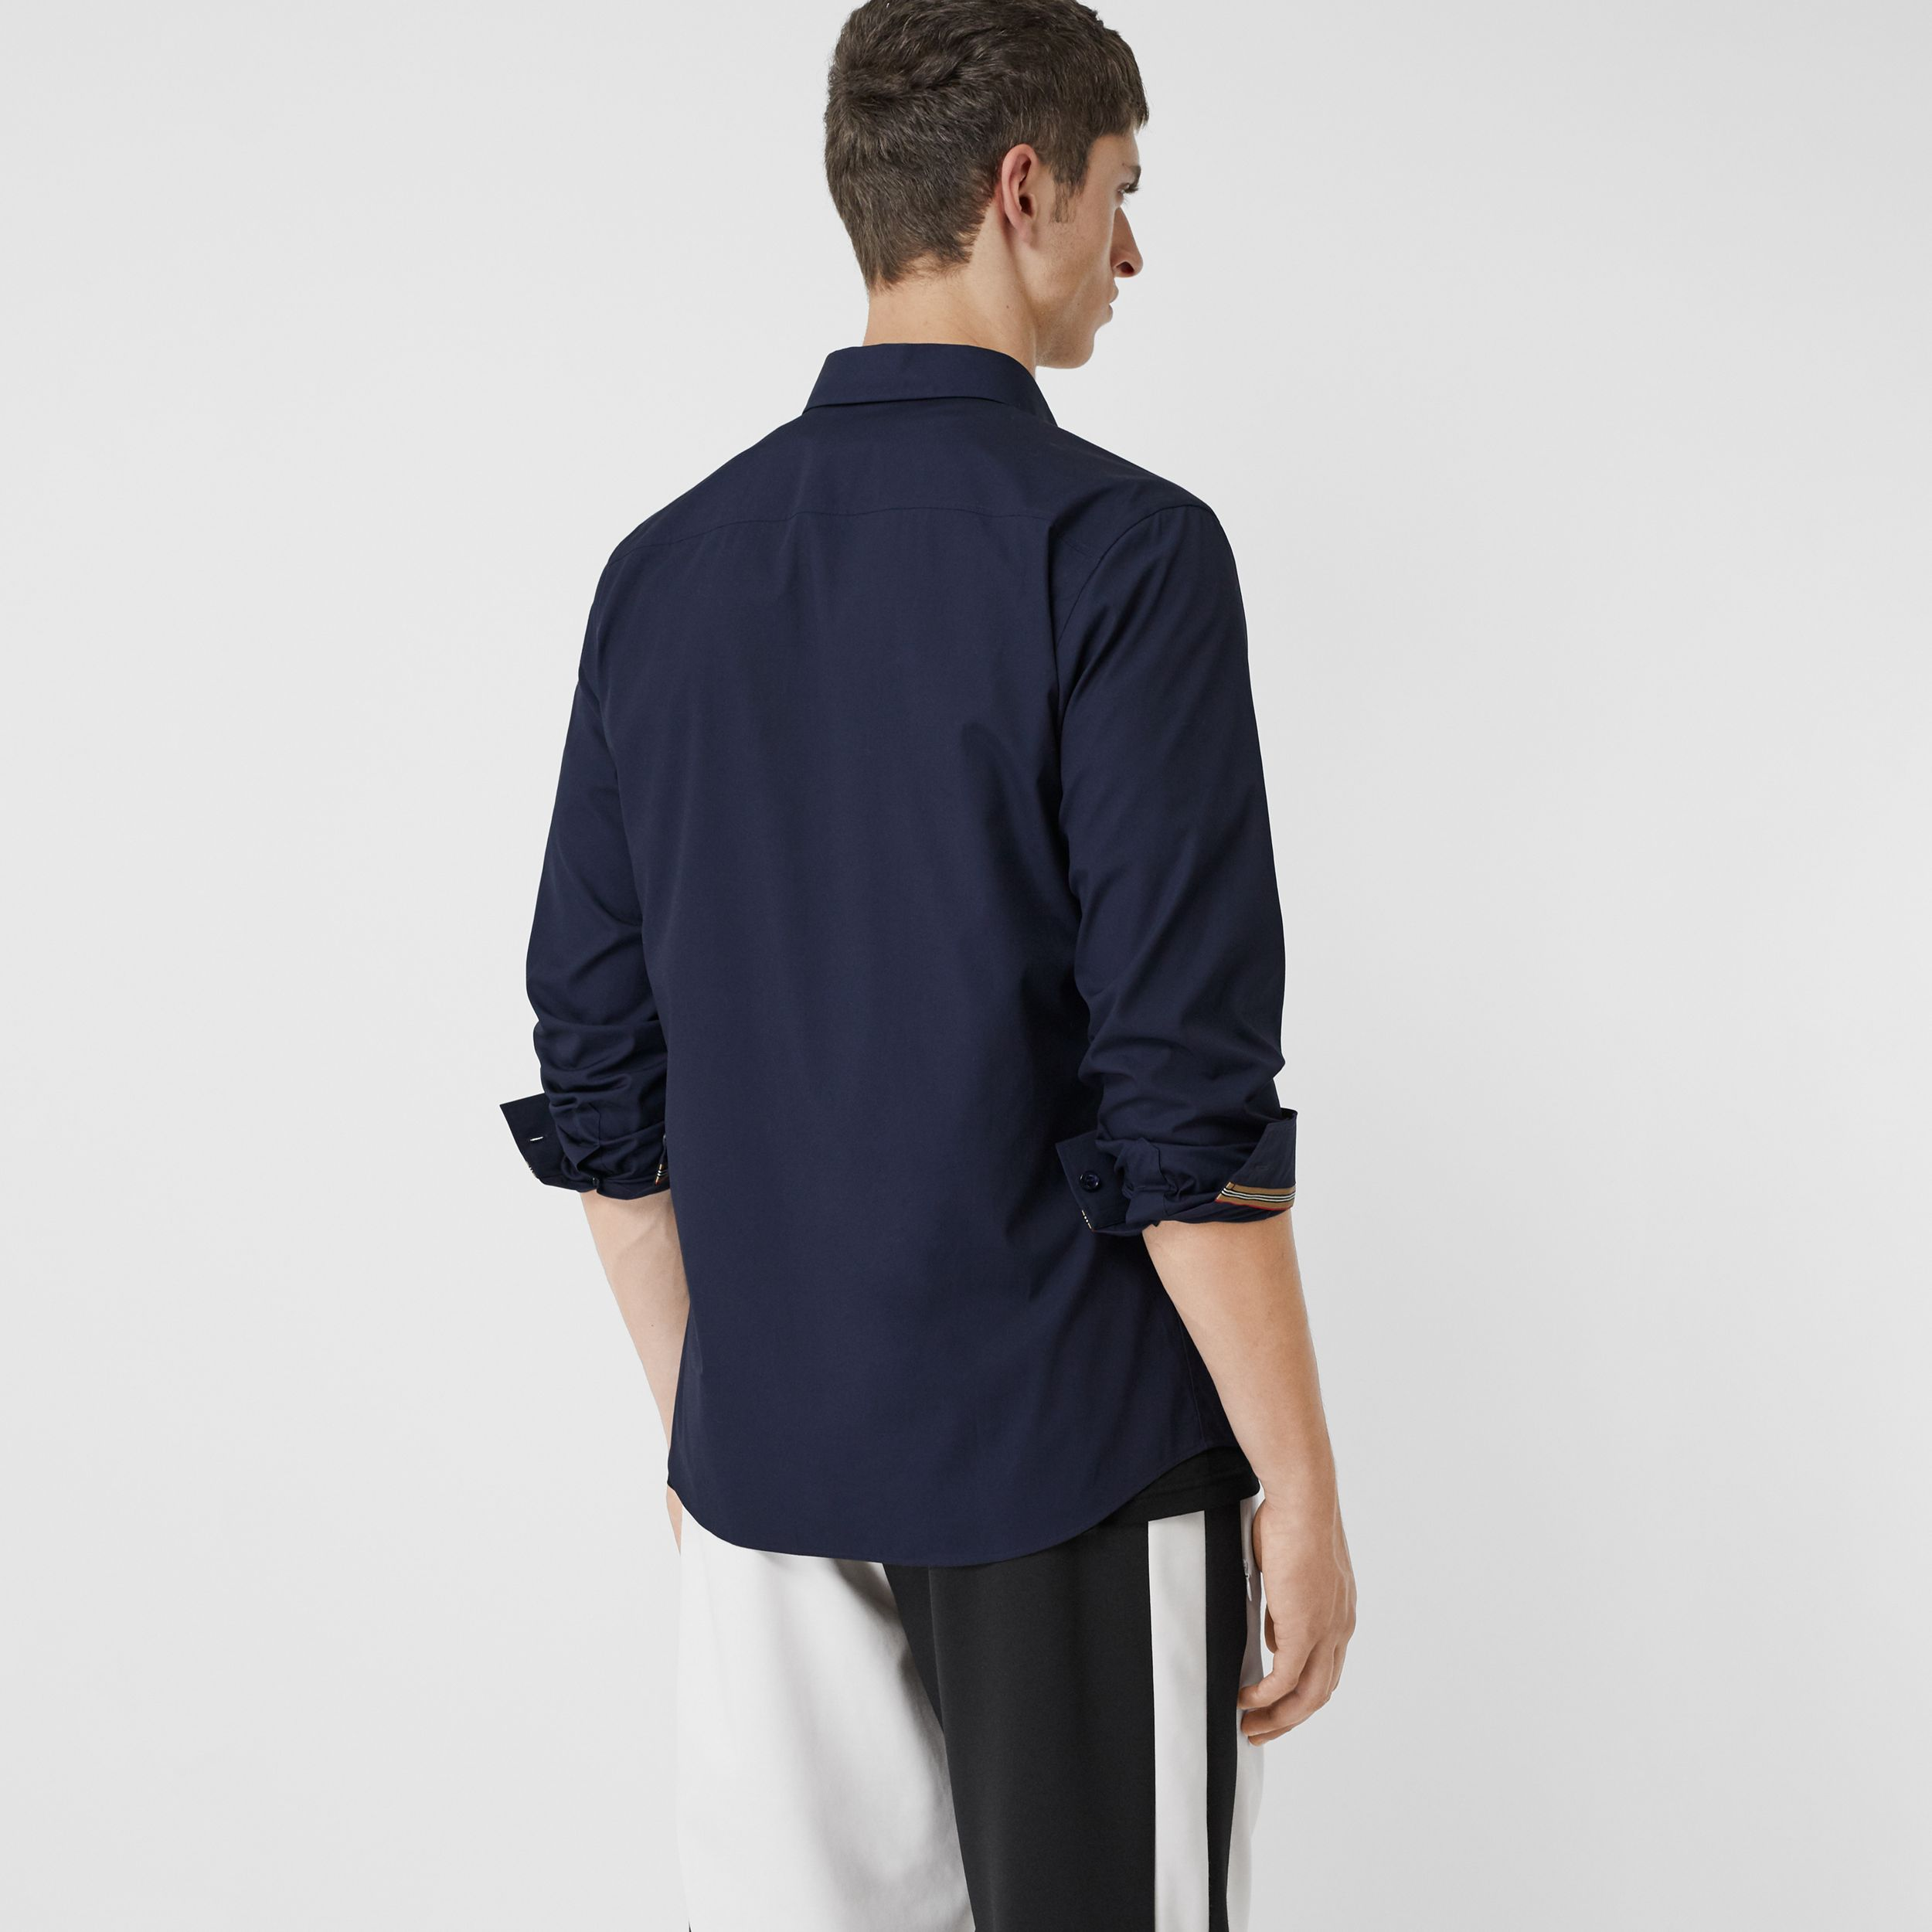 Monogram Motif Stretch Cotton Poplin Shirt in Navy - Men | Burberry United Kingdom - 3